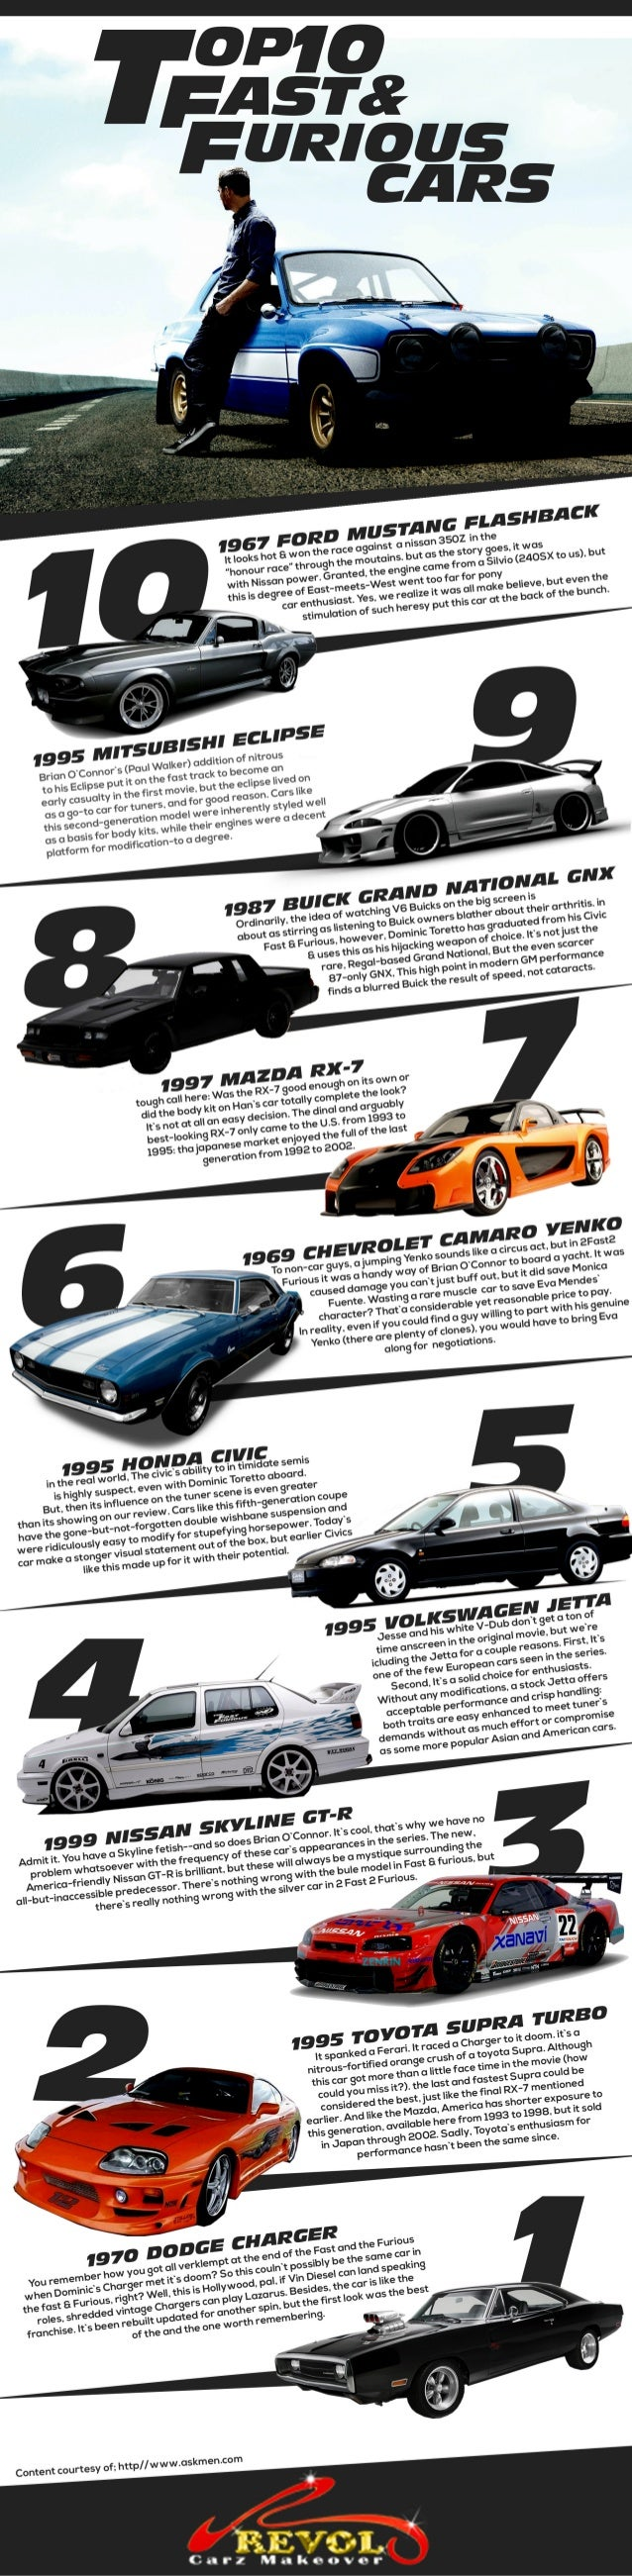 top 10 fast and furious cars. Black Bedroom Furniture Sets. Home Design Ideas